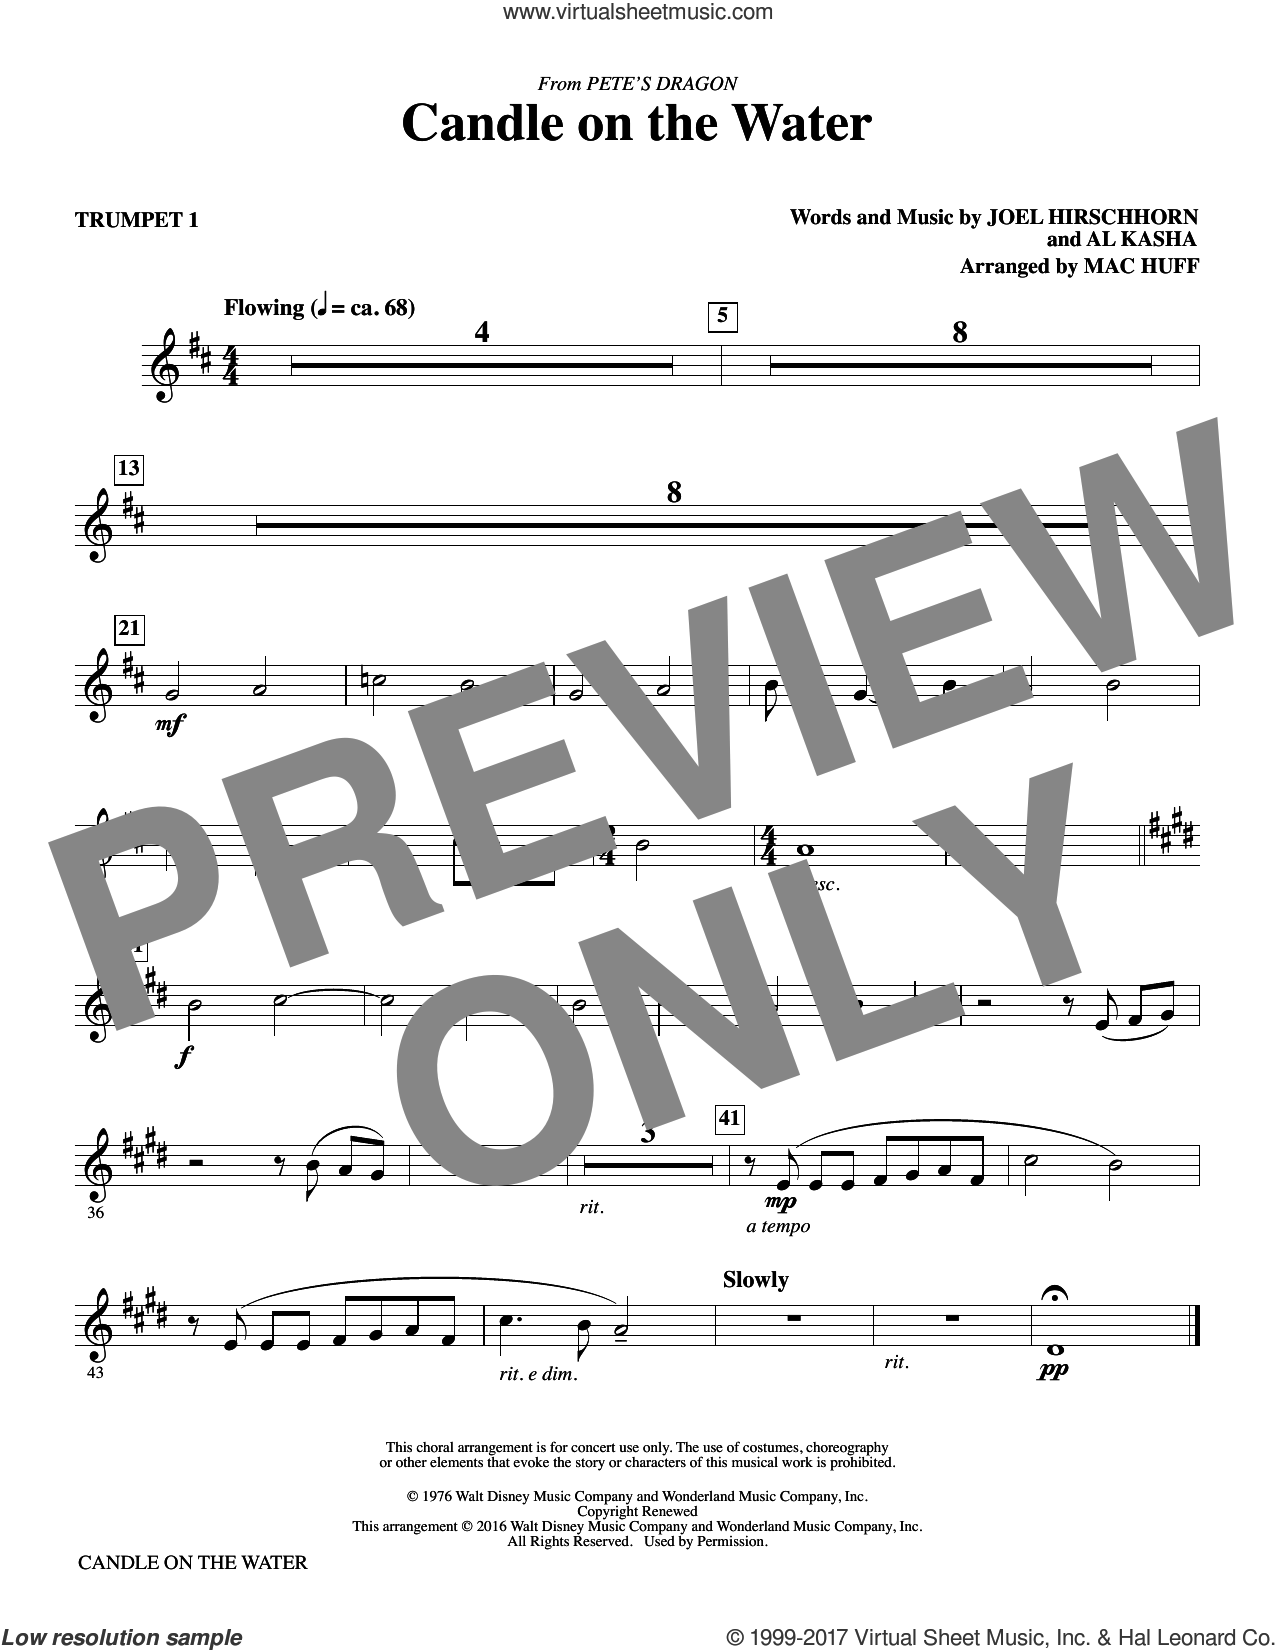 Candle on the Water (complete set of parts) sheet music for orchestra/band by Mac Huff, Al Kasha and Joel Hirschhorn, intermediate skill level